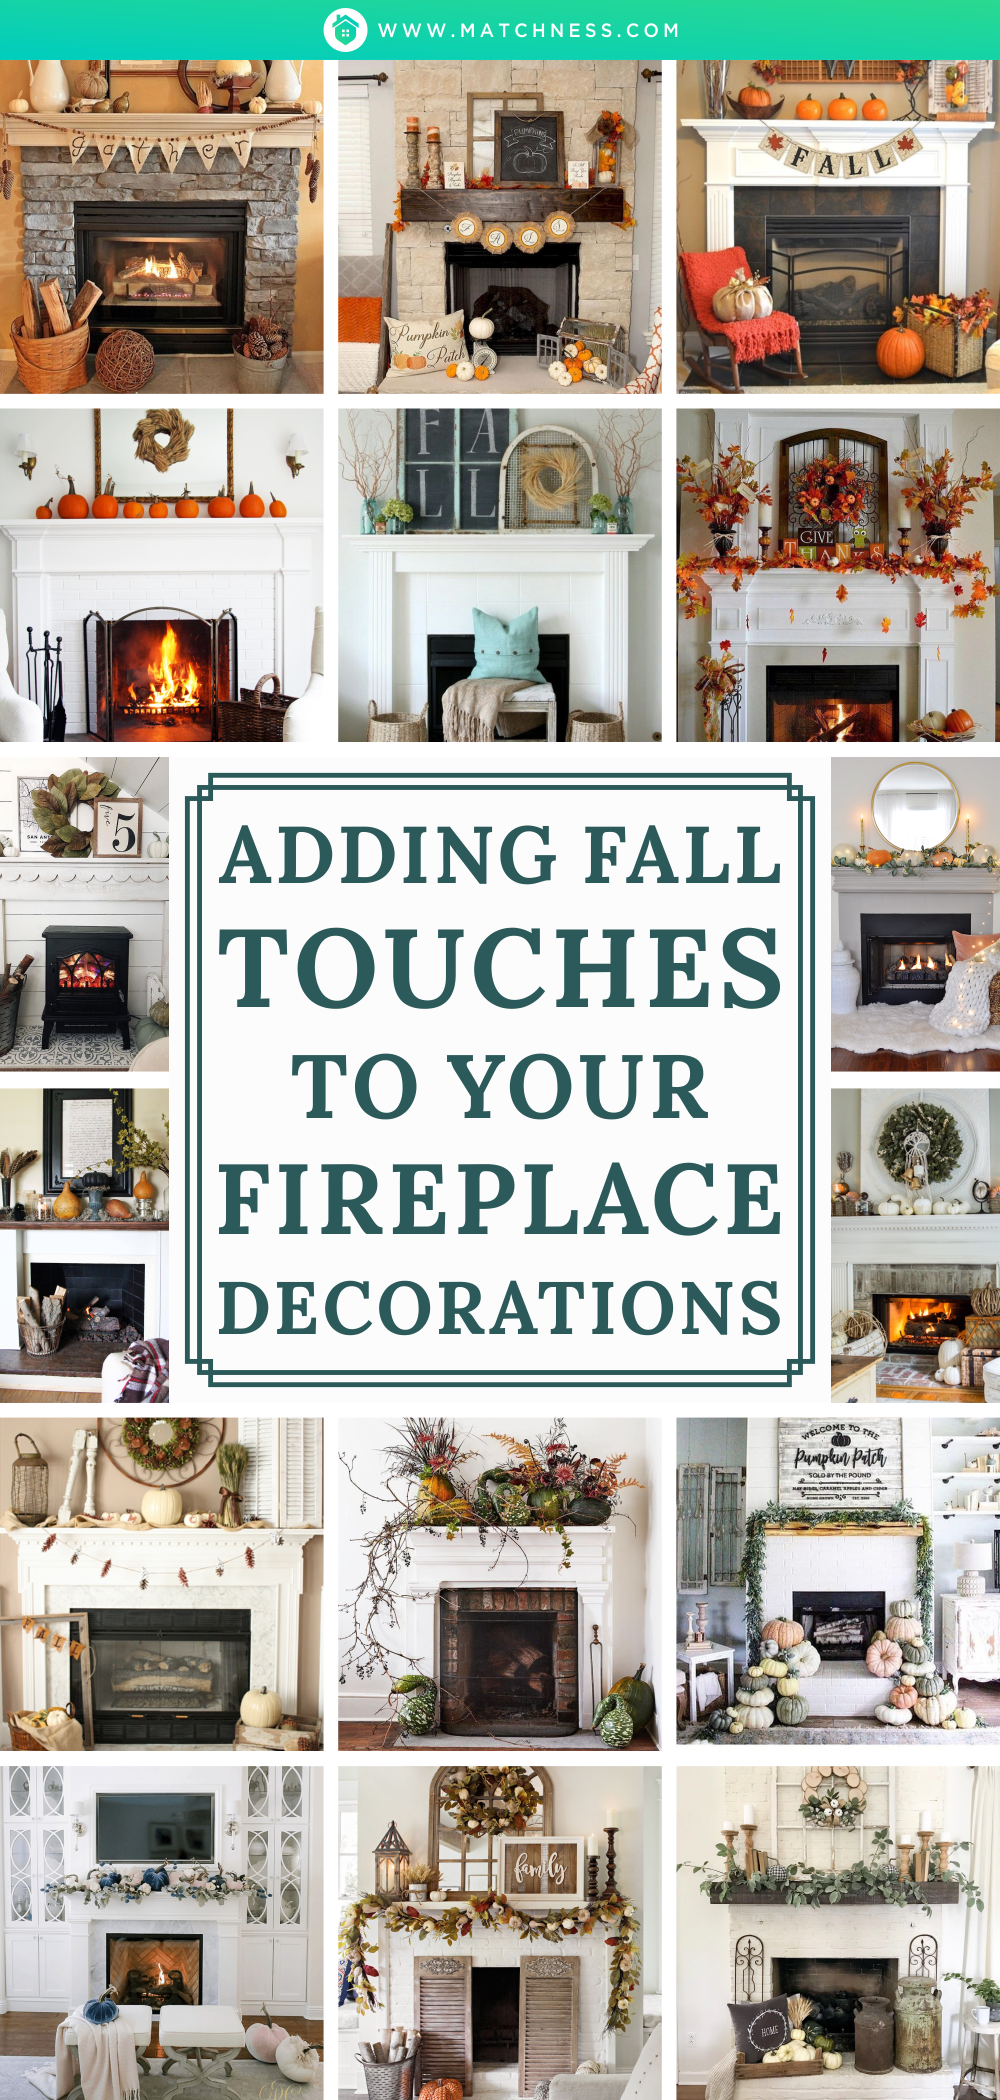 Adding-fall-touches-to-your-fireplace-decorations1